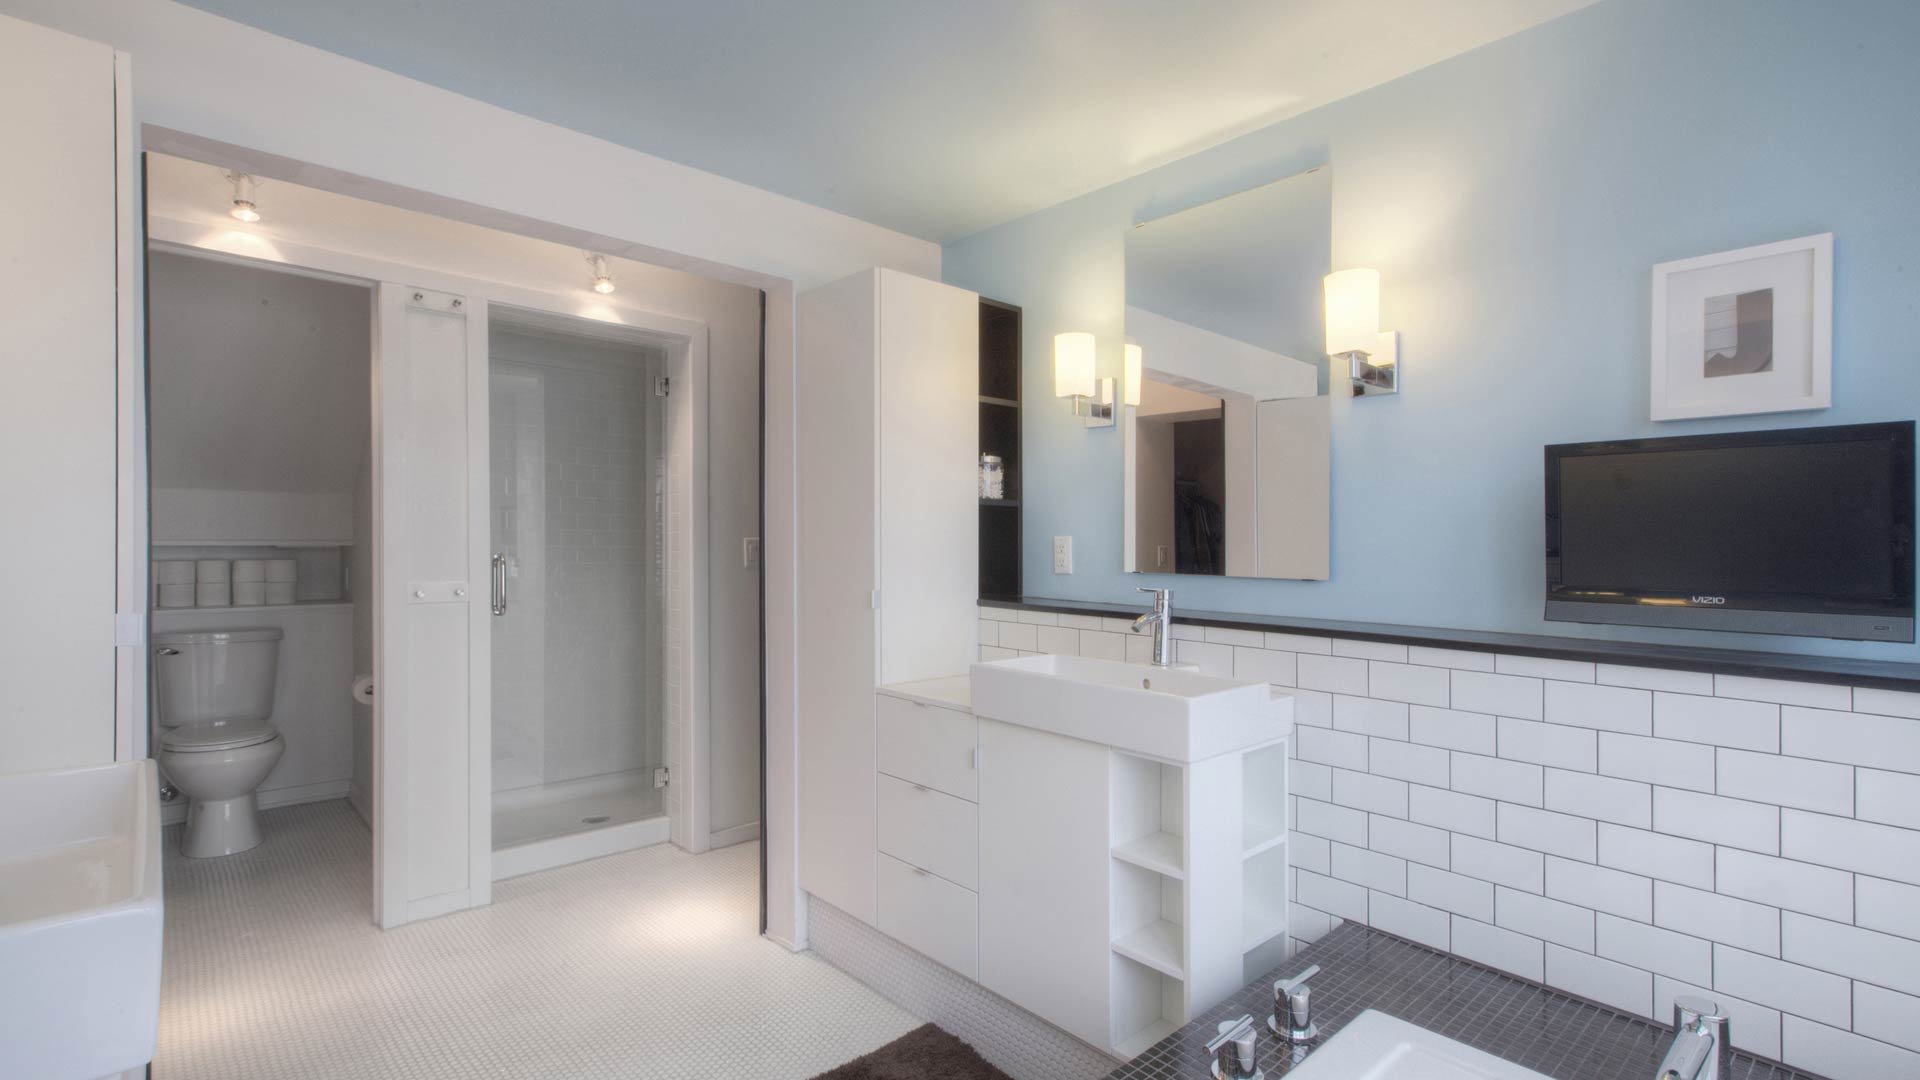 Master Bathroom includes double vanities, platform tub, bathroom closet, shower, and custom details - Classic Irvington Tudor Remodel - Indianapolis, IN